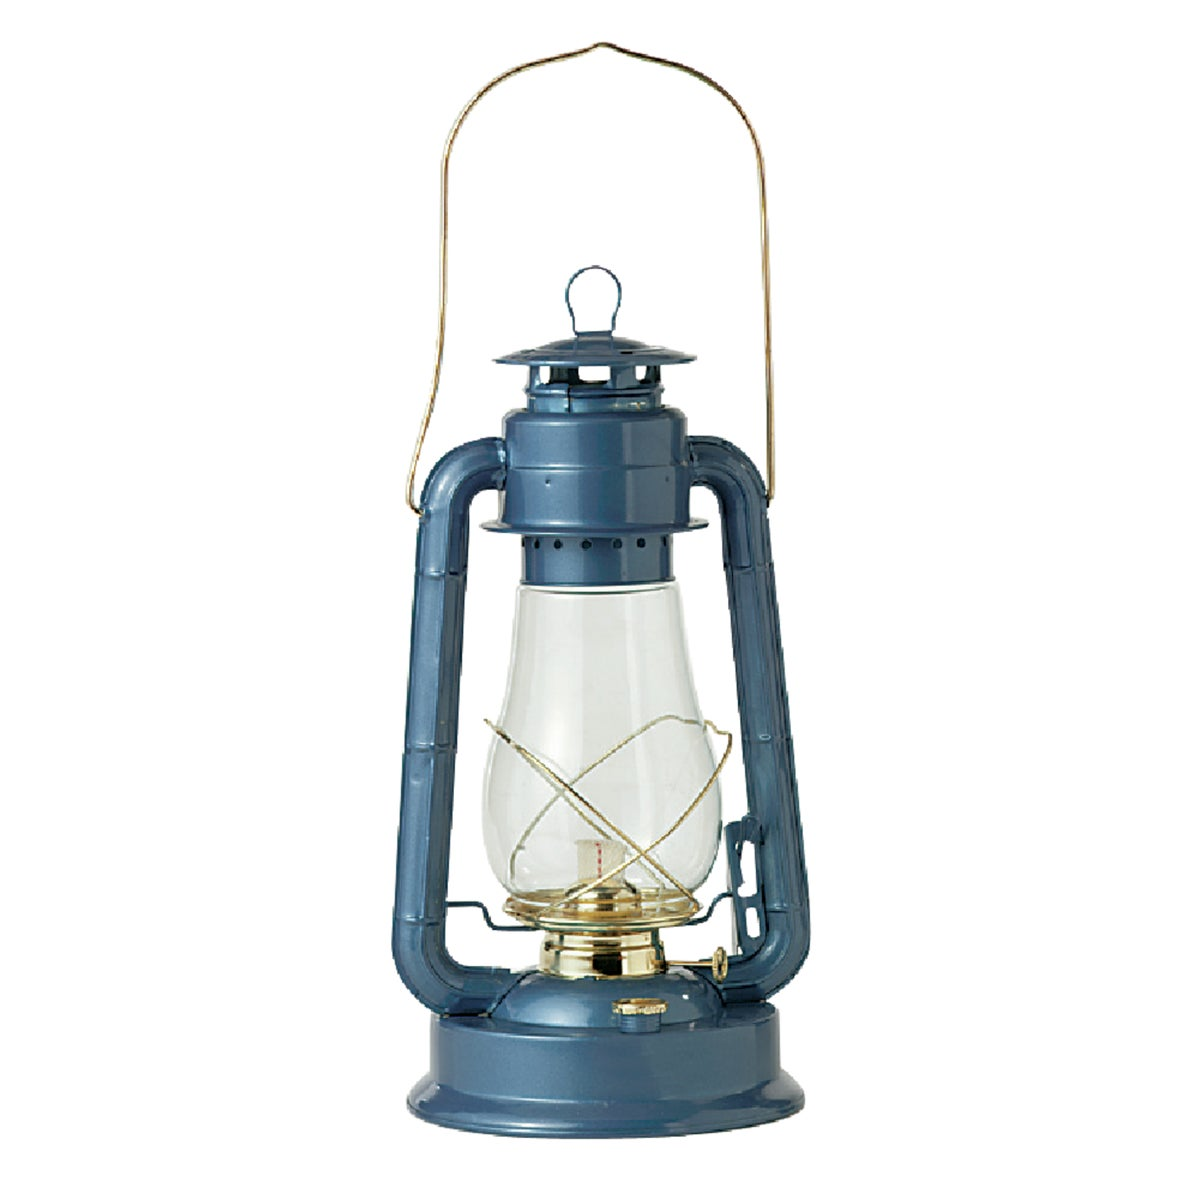 "BLUE 15"" SUPREME LANTERN - 310-80061 by 21st Century Inc"